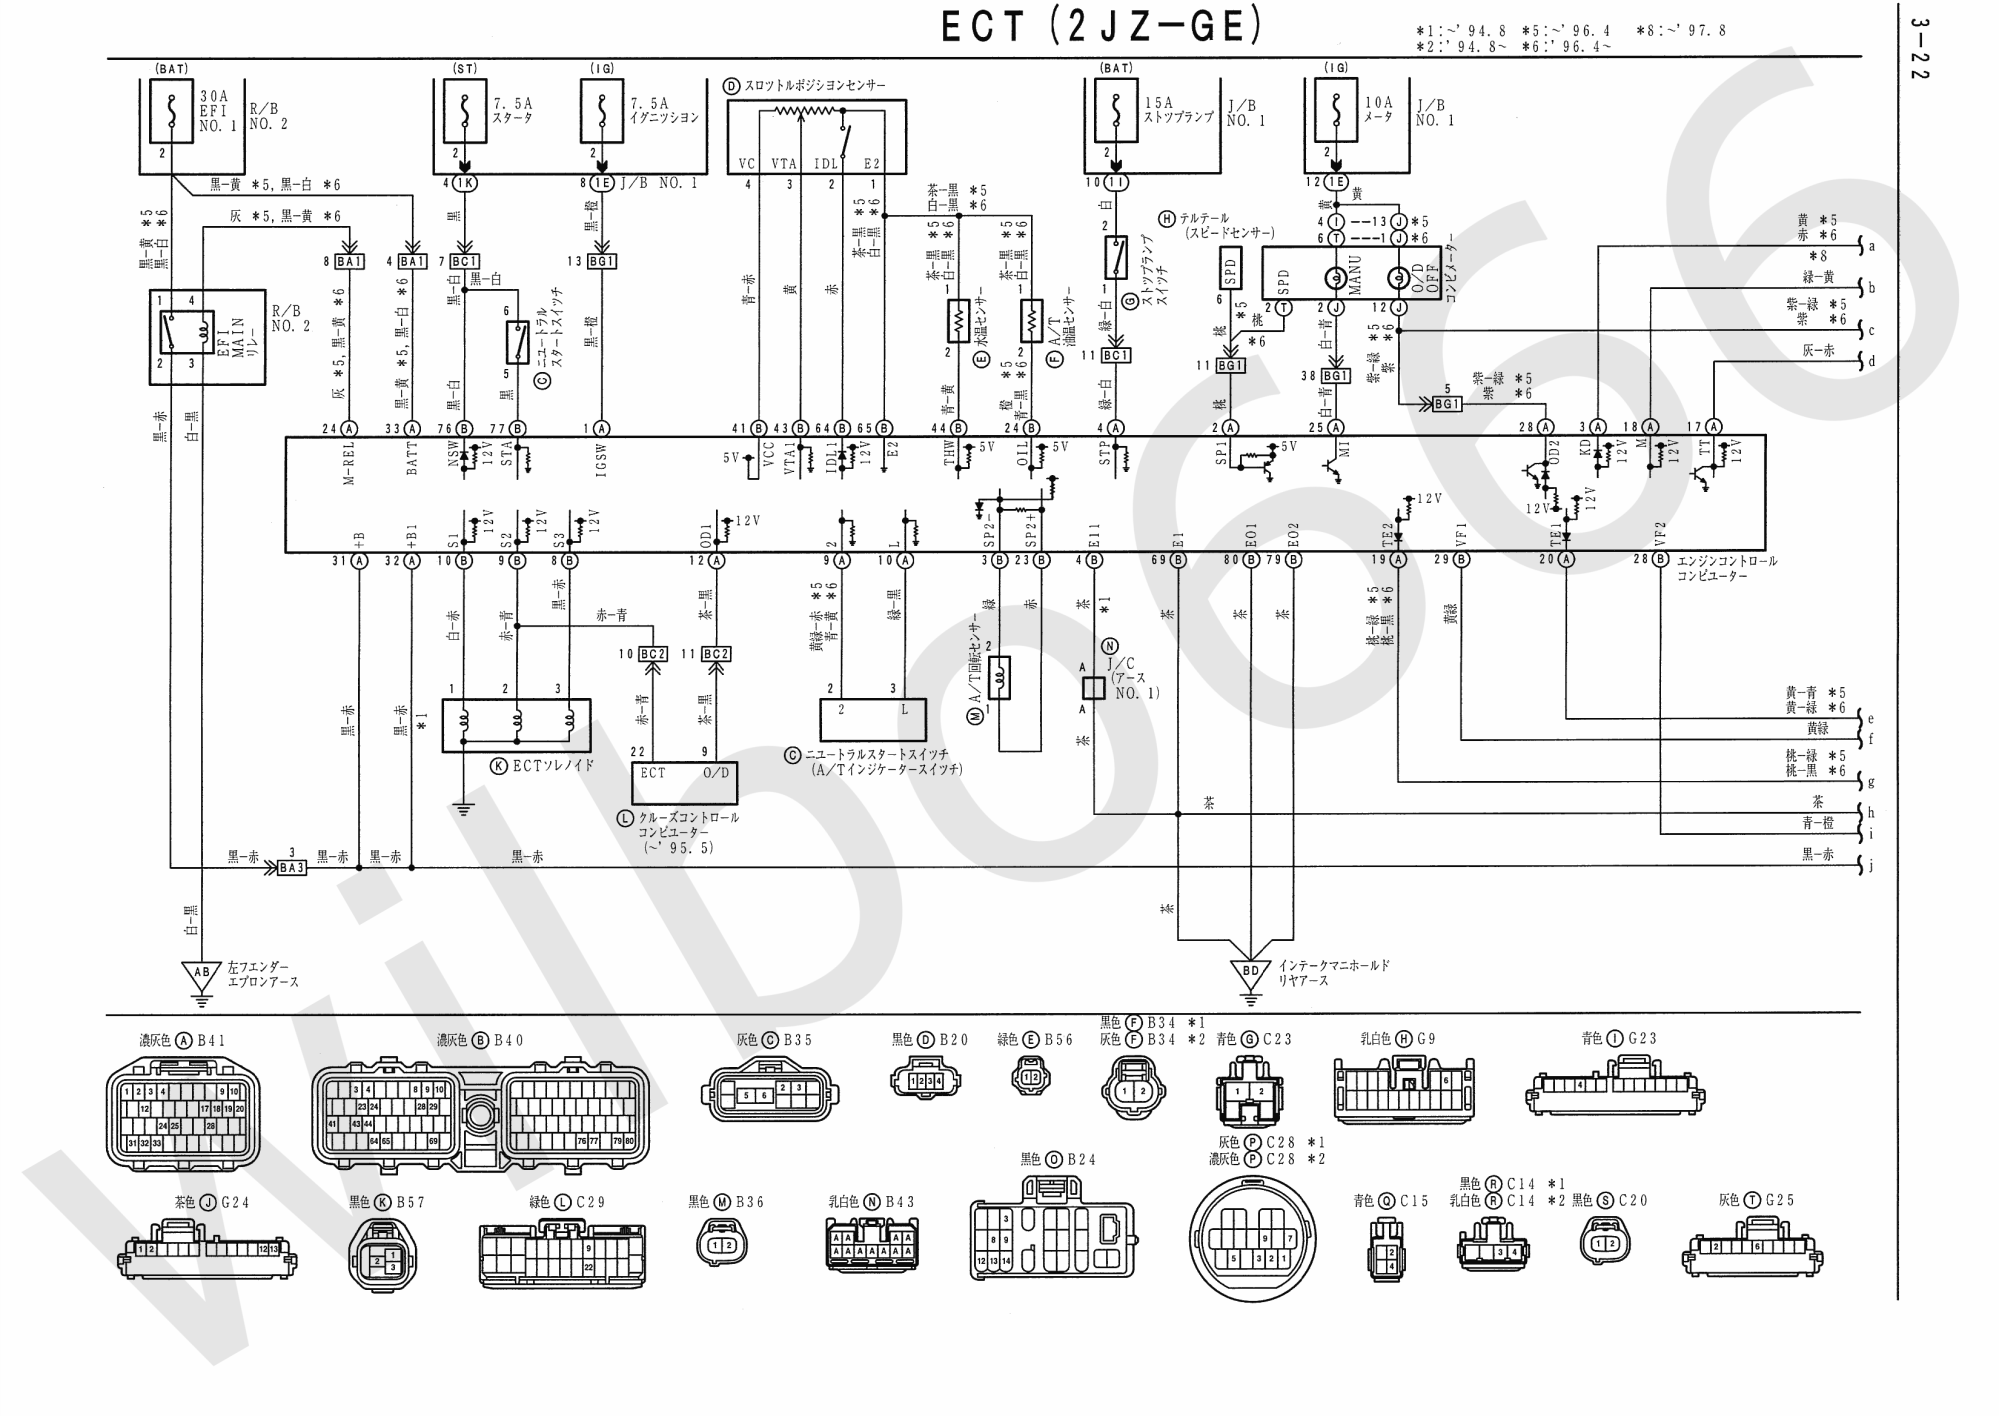 hight resolution of 93 mr2 ecu wiring diagram wiring library mr2 coil diagram 93 mr2 ecu  [ 2000 x 1416 Pixel ]